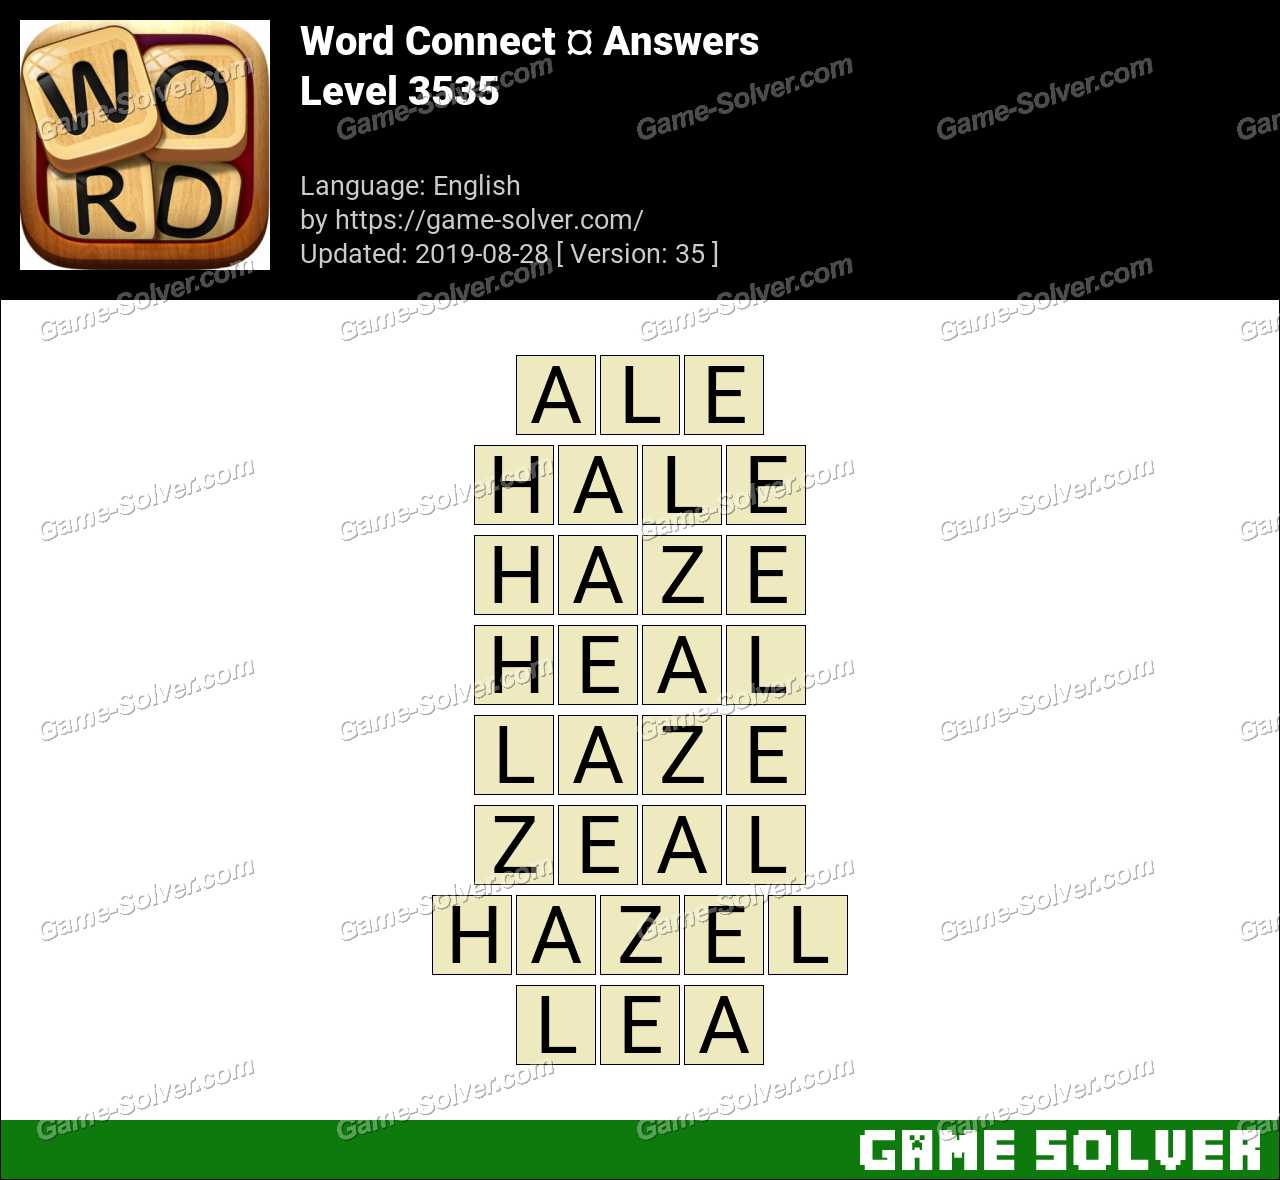 Word Connect Level 3535 Answers